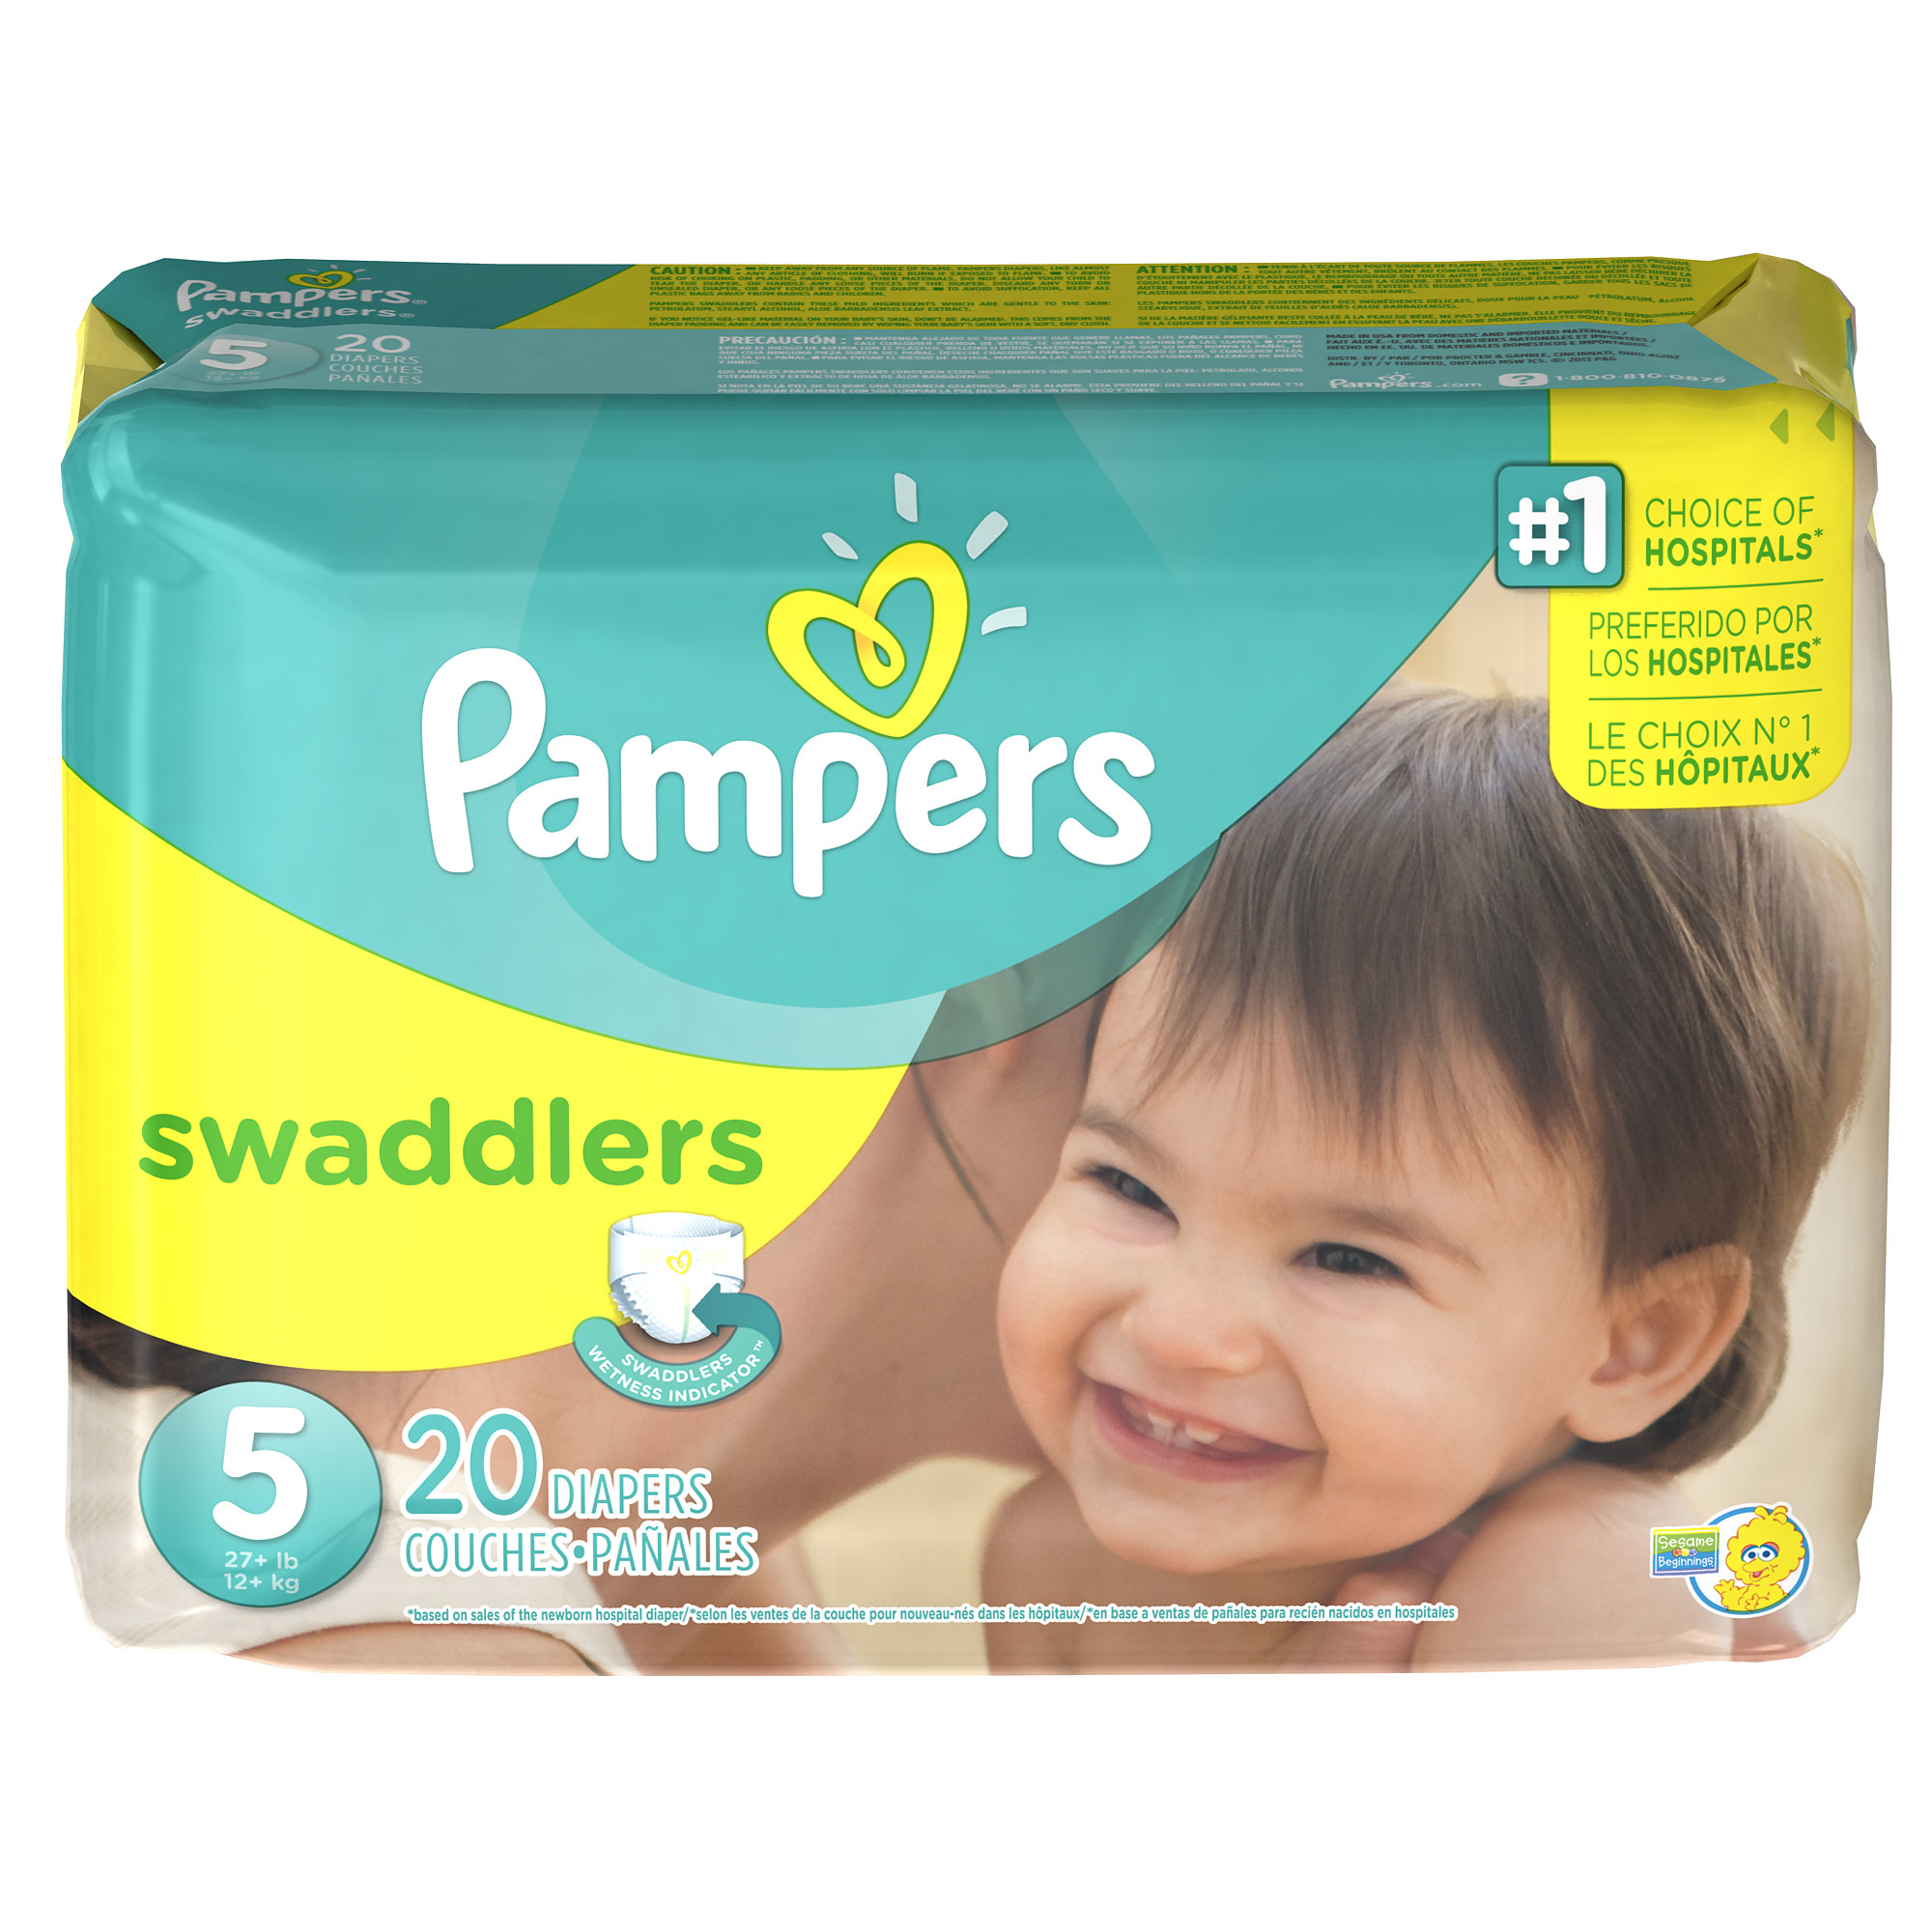 Oct 17, · Wrap your baby in Pampers Swaddlers diapers, our most trusted comfort and protection and the #1 Choice of US Hospitals. Our Blankie Soft diaper with a unique Absorb Away Liner pulls wetness and mess away from baby's skin to help keep your baby comfortable. It also has a color-changing wetness indicator that tells you when.